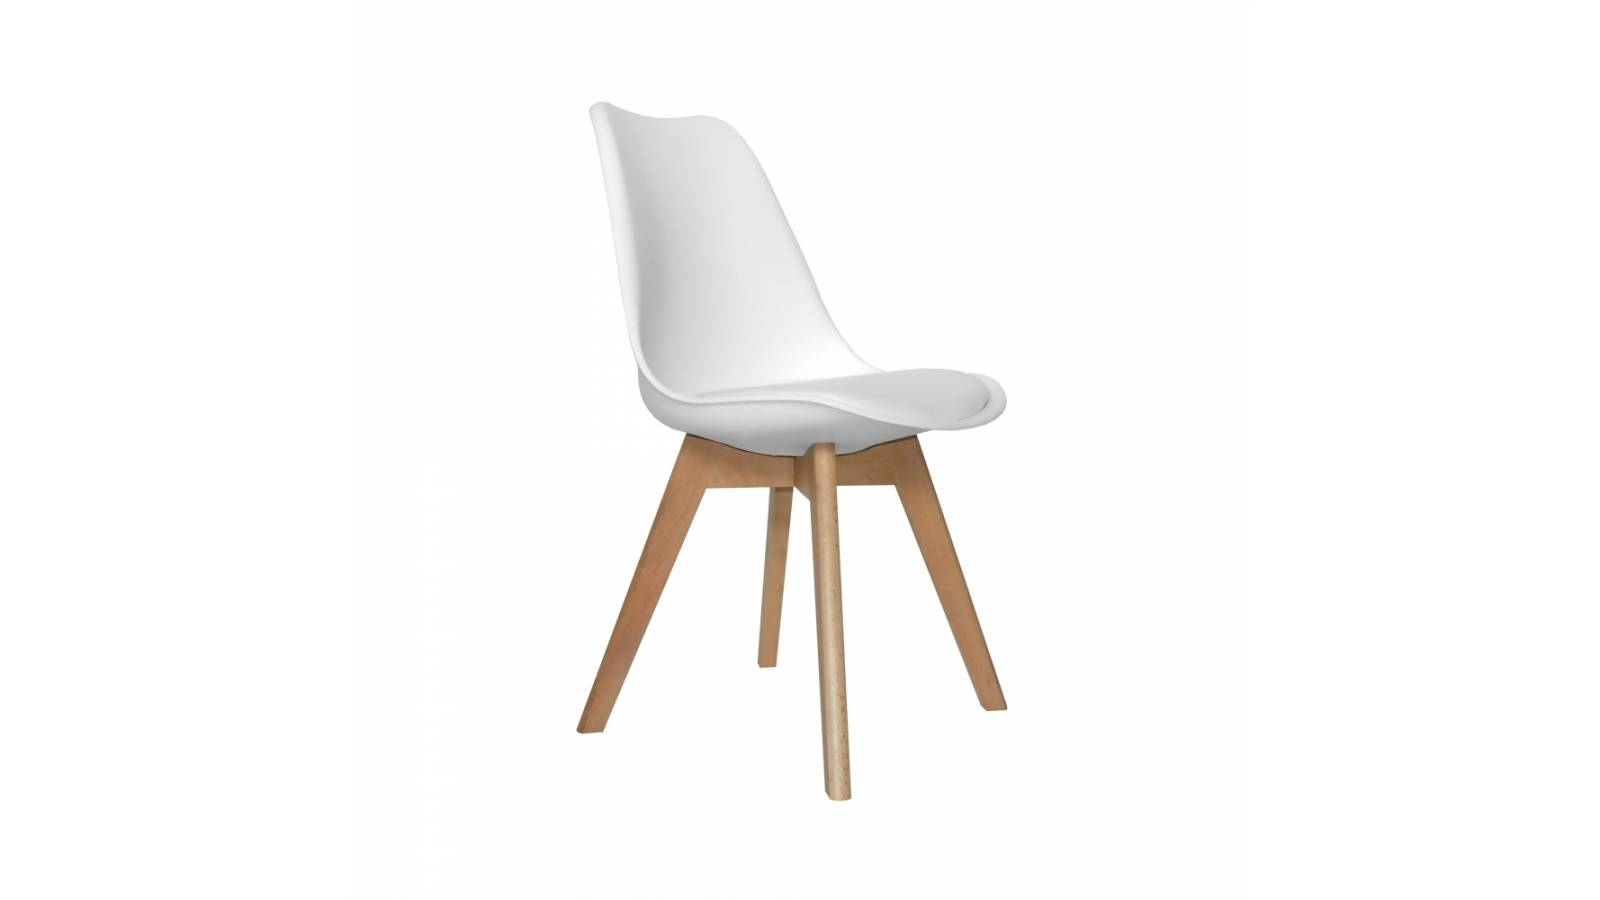 Silla New Tower (tipo Eames acolchonada)